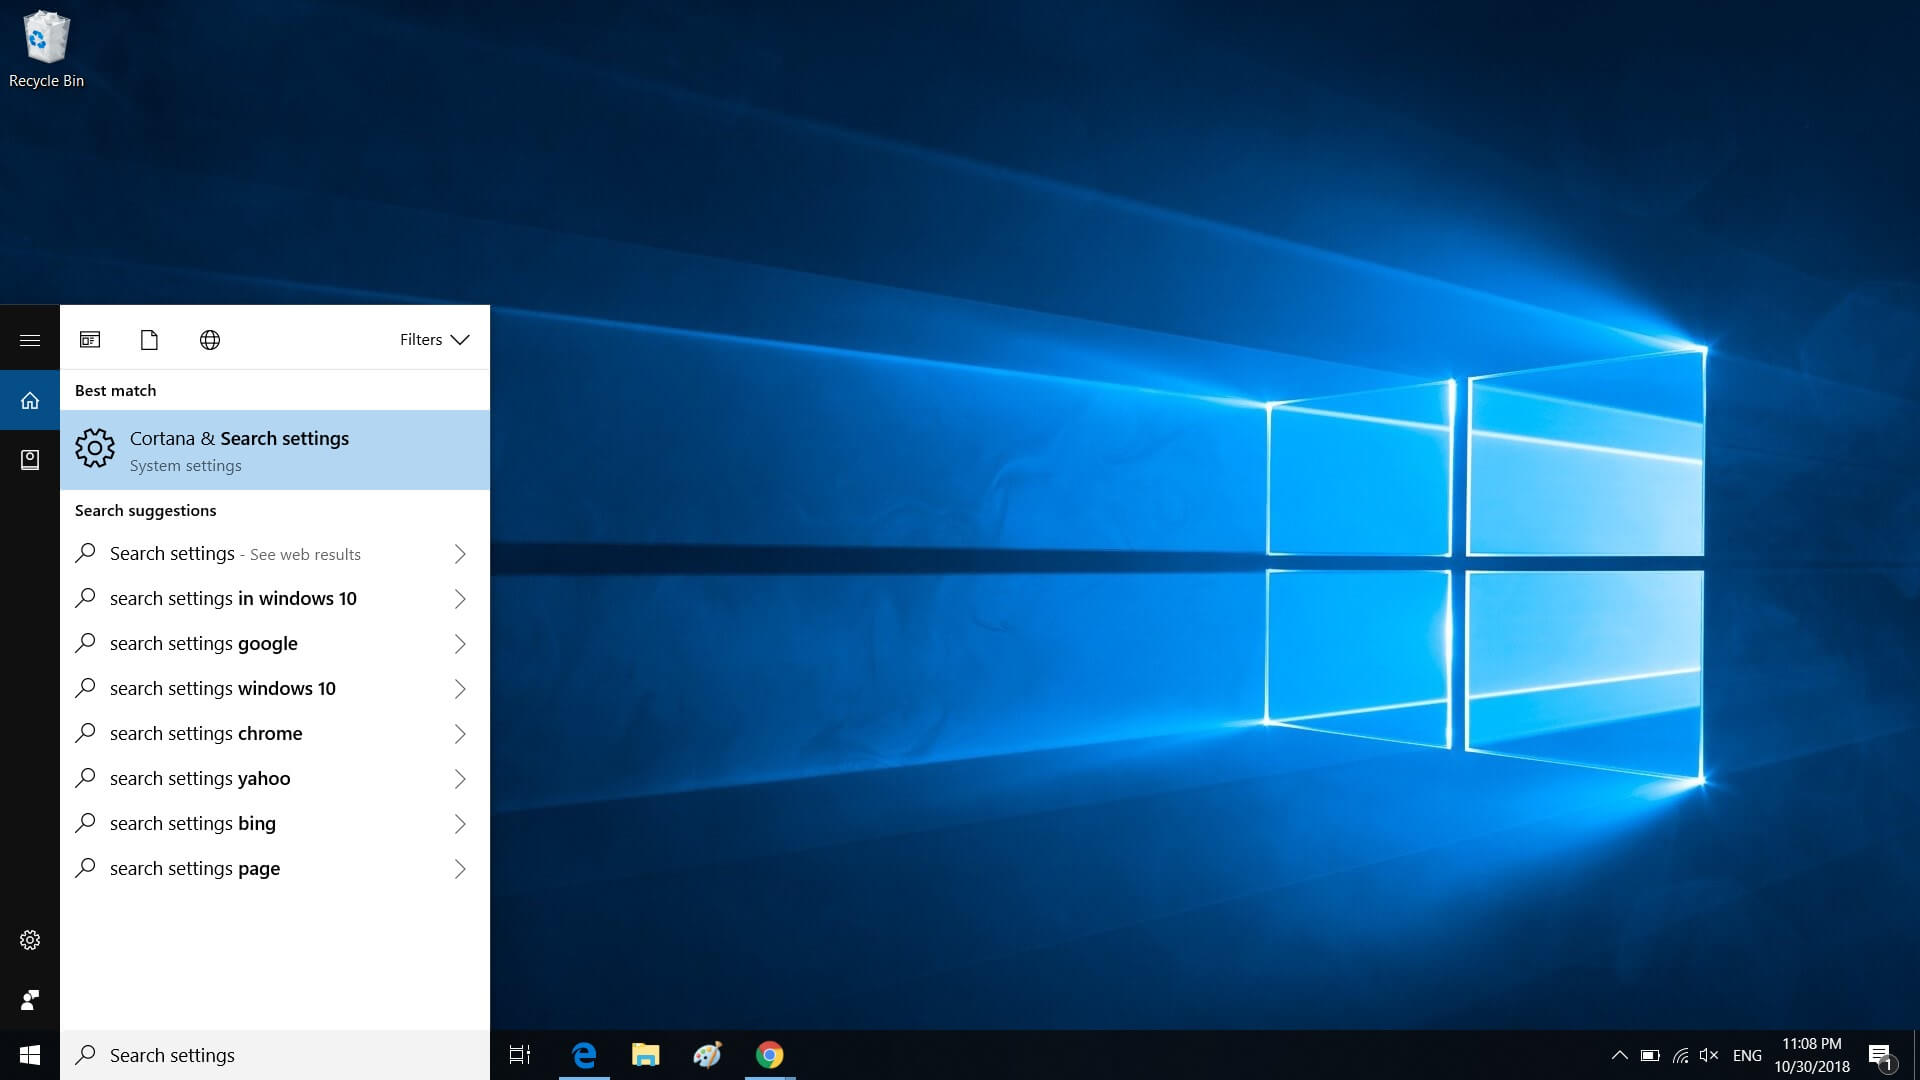 Windows 10 Search Settings